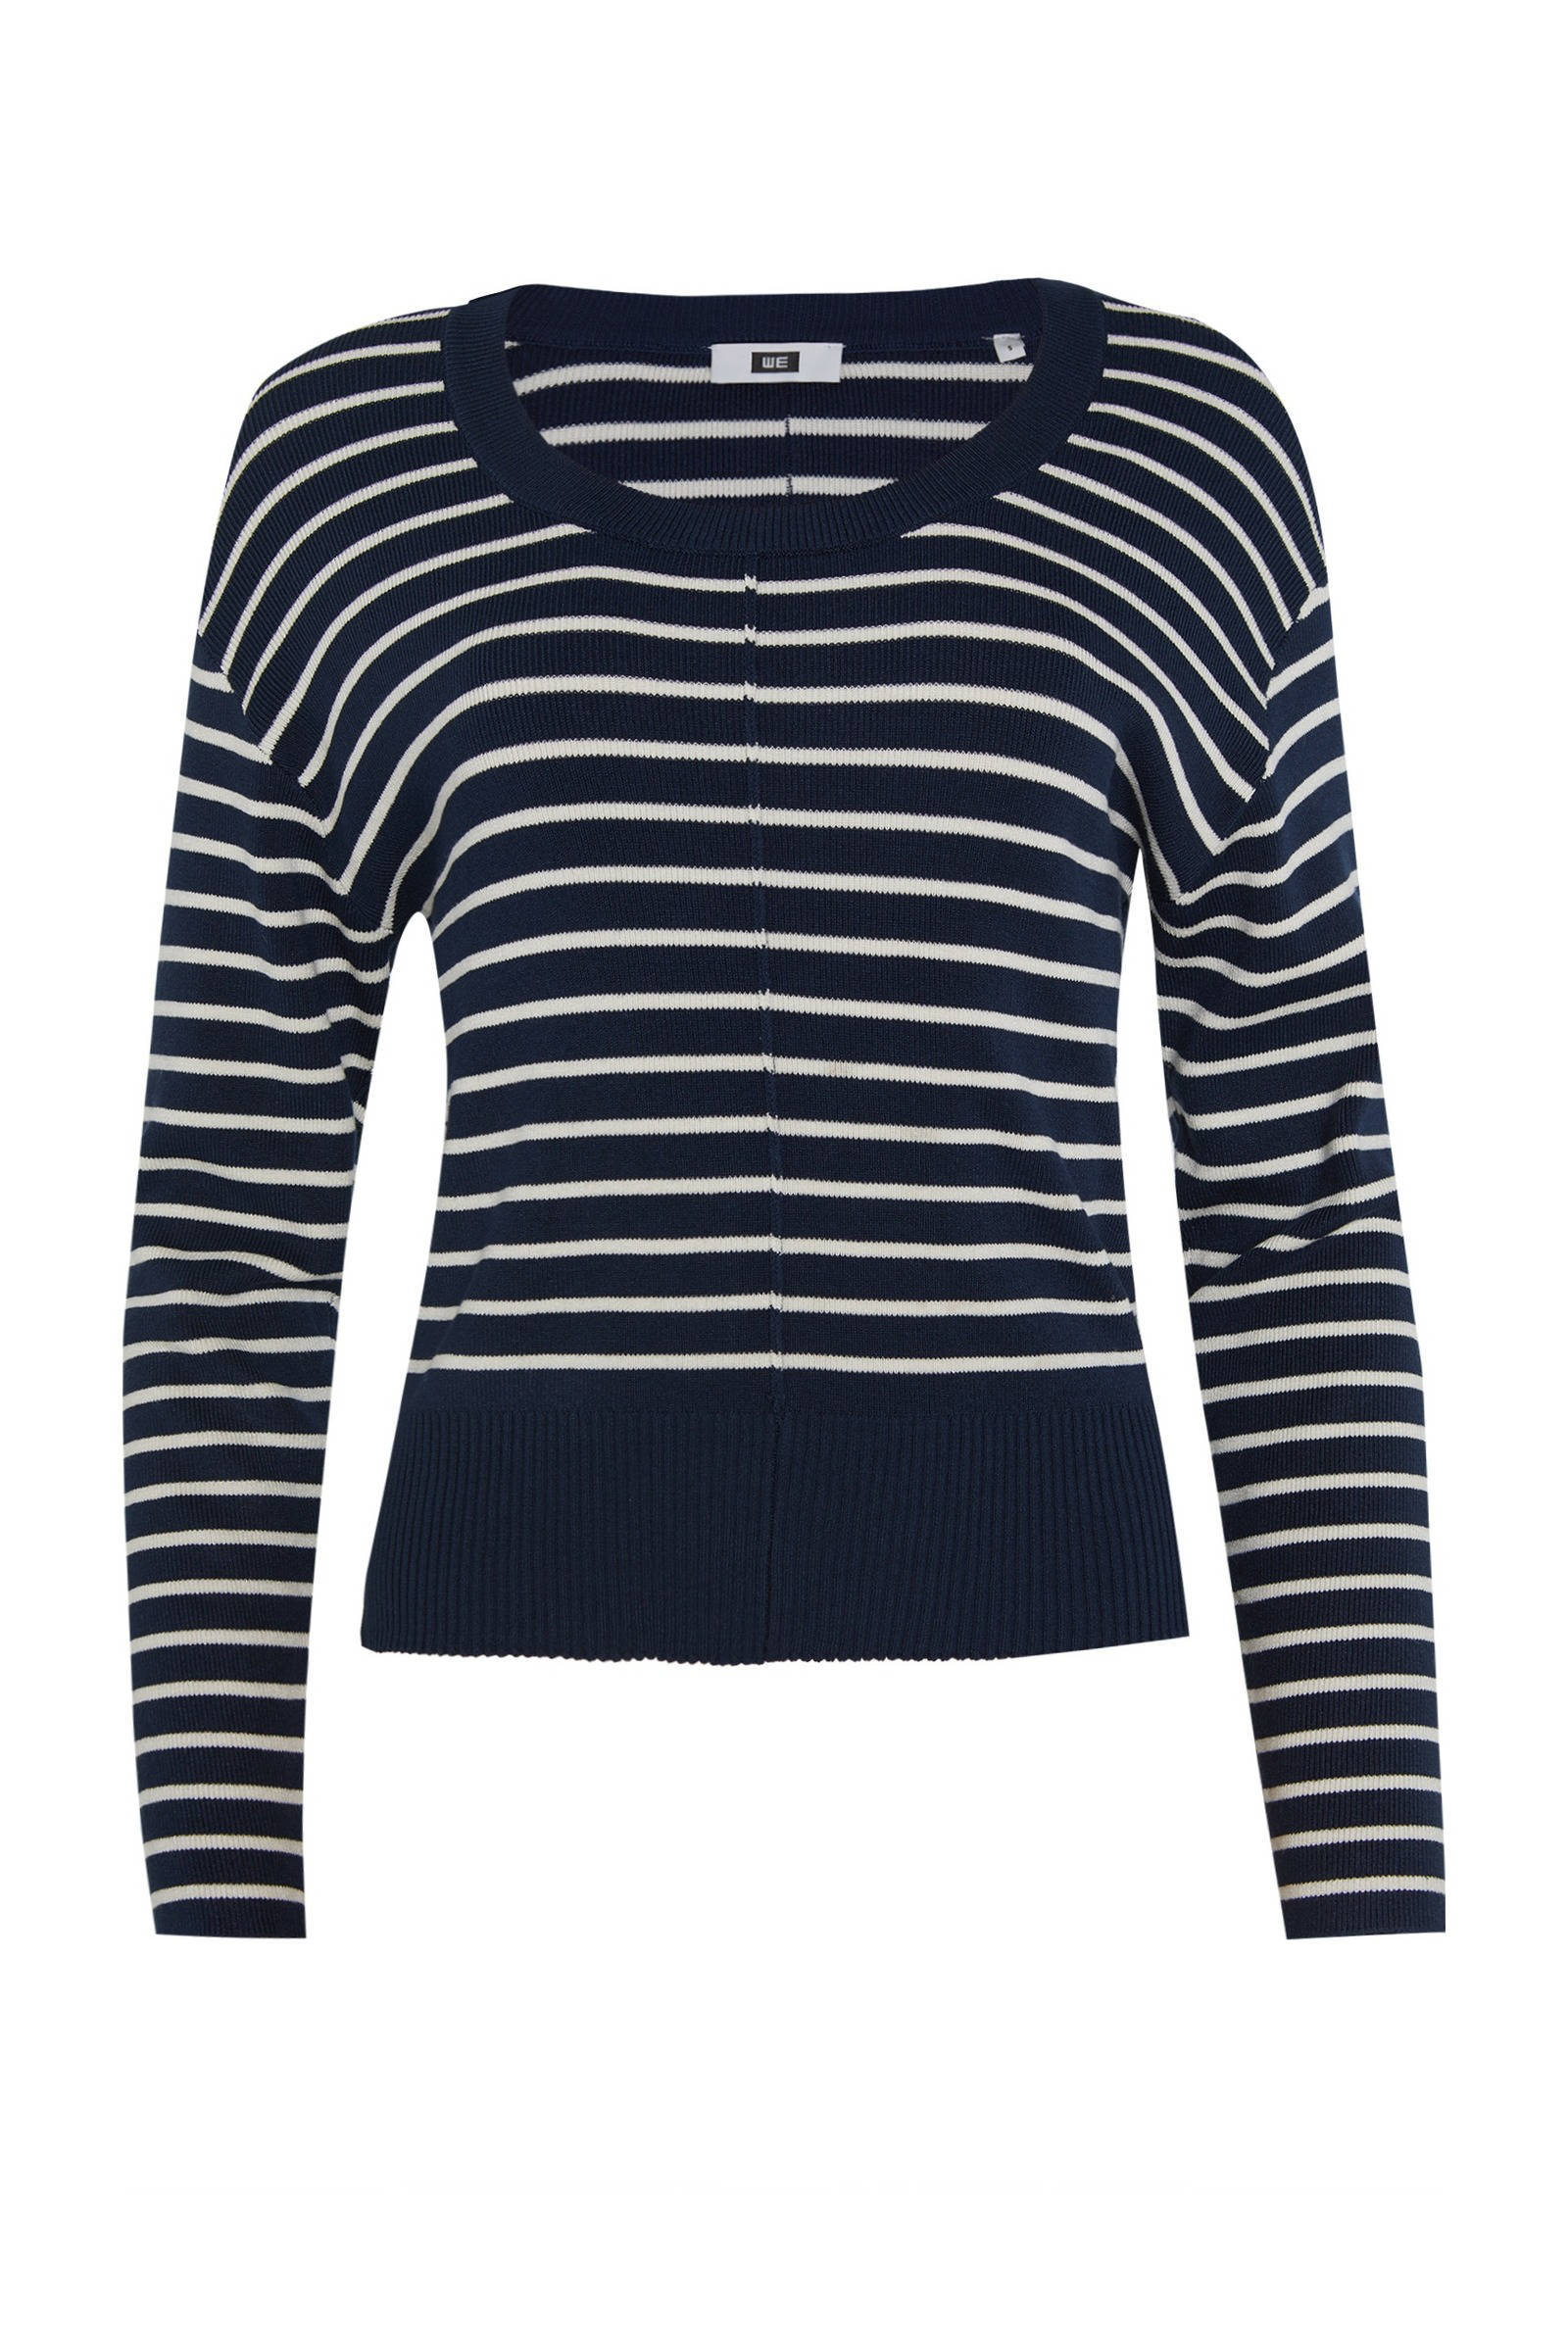 Gestreepte Dames Trui Blauw | Themusthaves.nl